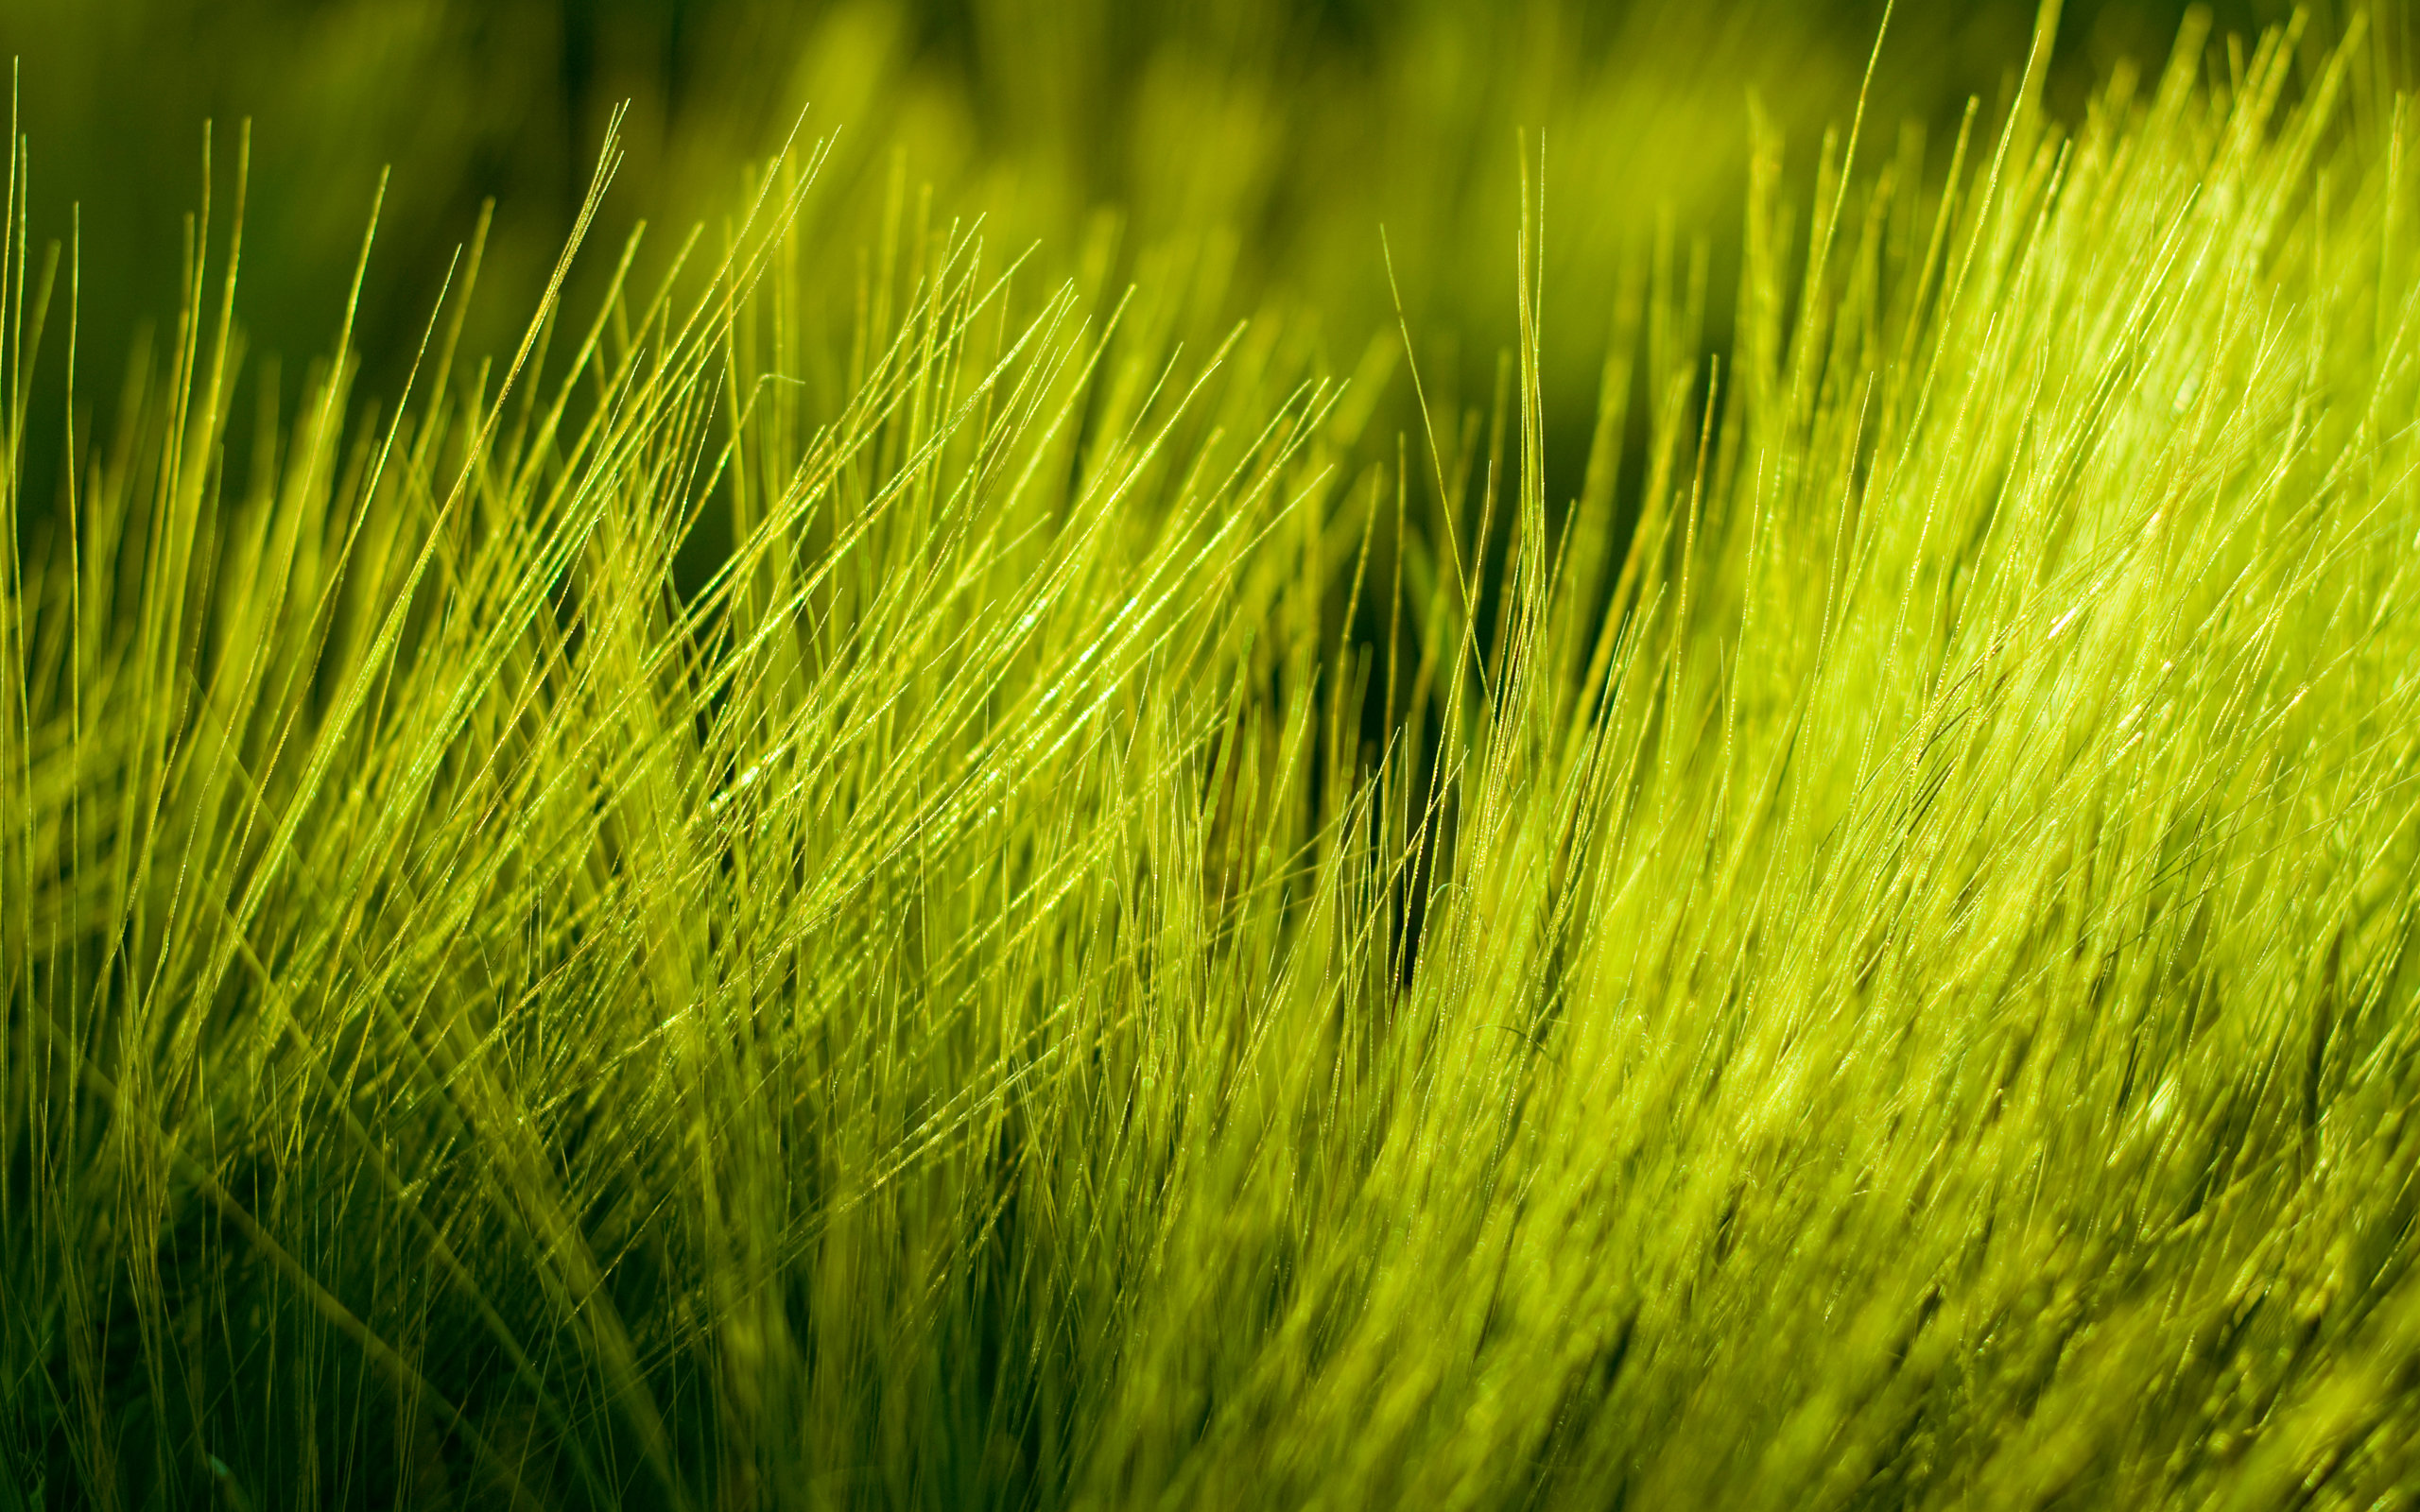 grass background hd landscape best grass background id377936 for high resolution hd 2560x1600 computer